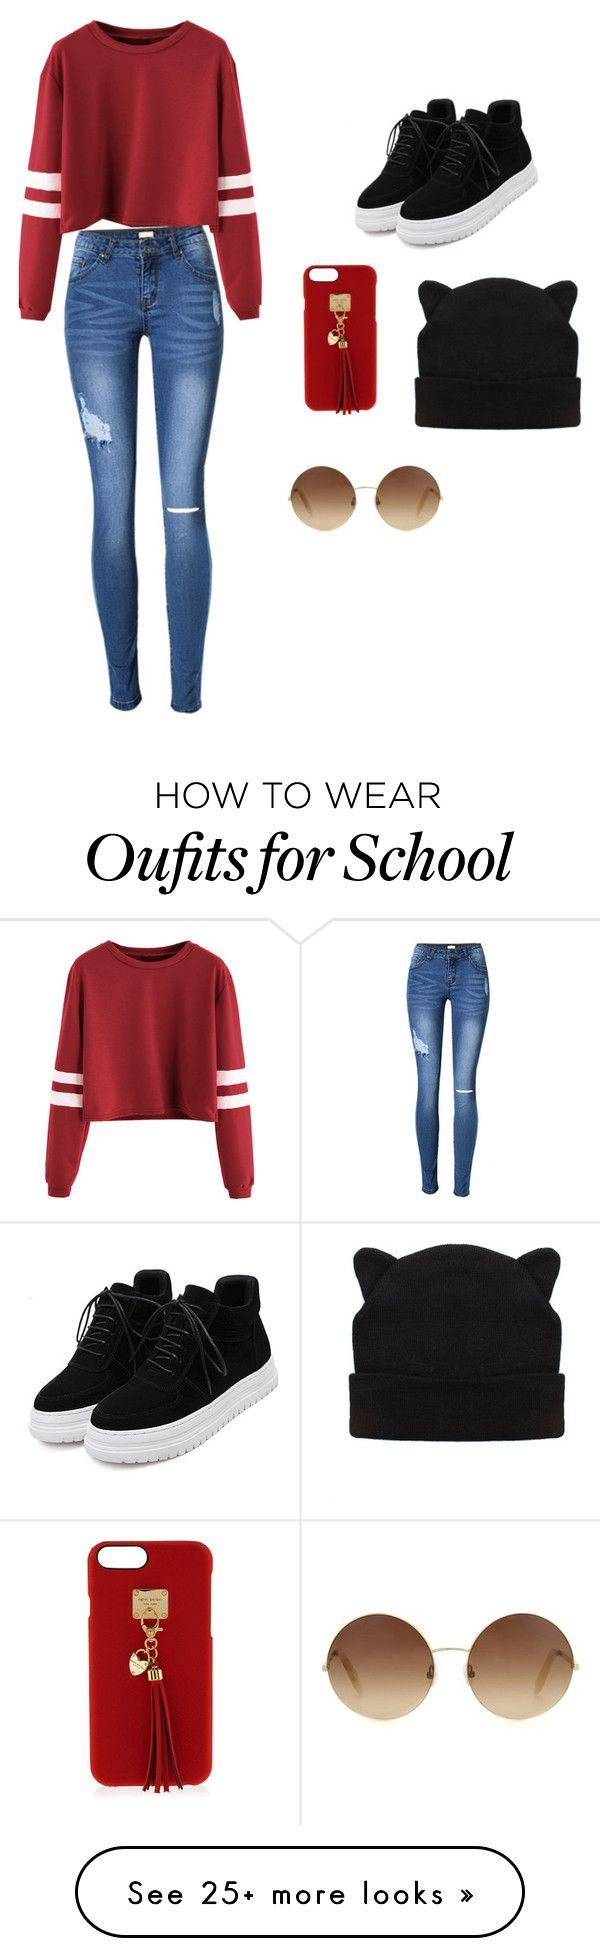 Cute Teen Girls School Outfits For Spring